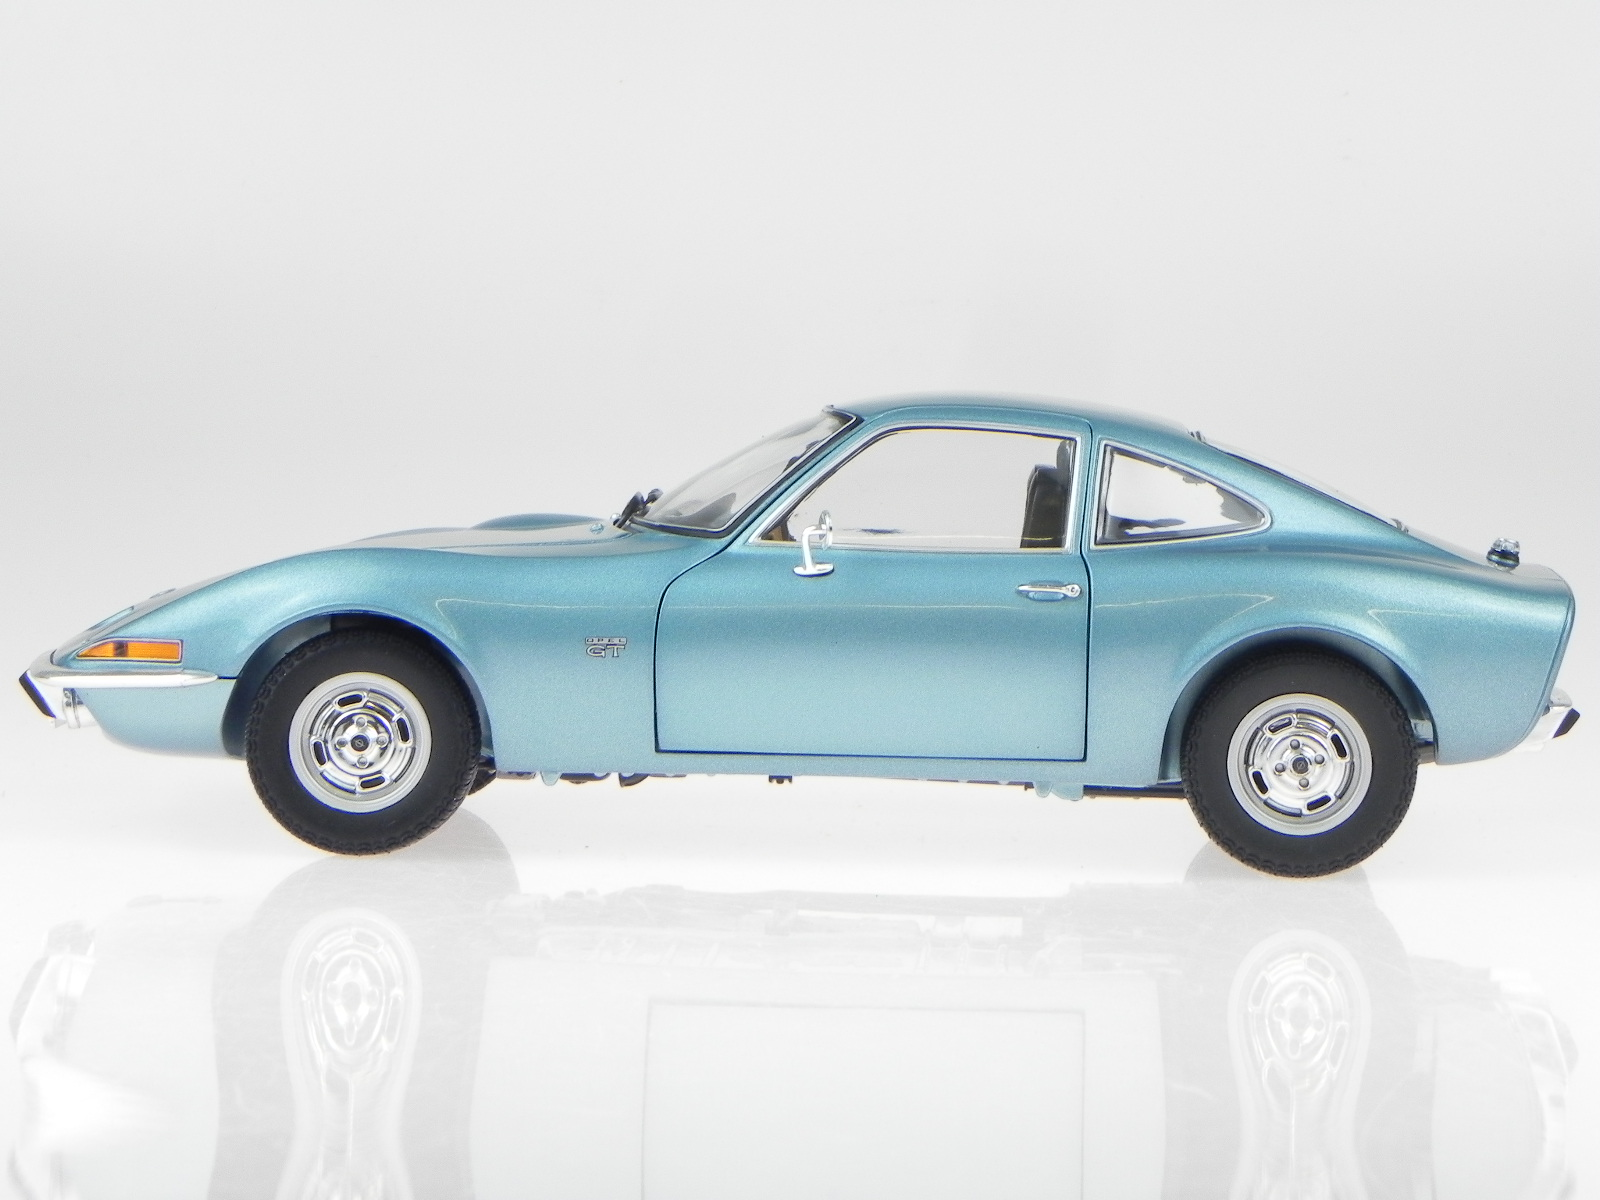 opel gt 1972 blue metallic modelcar 180049030 minichamps 1. Black Bedroom Furniture Sets. Home Design Ideas